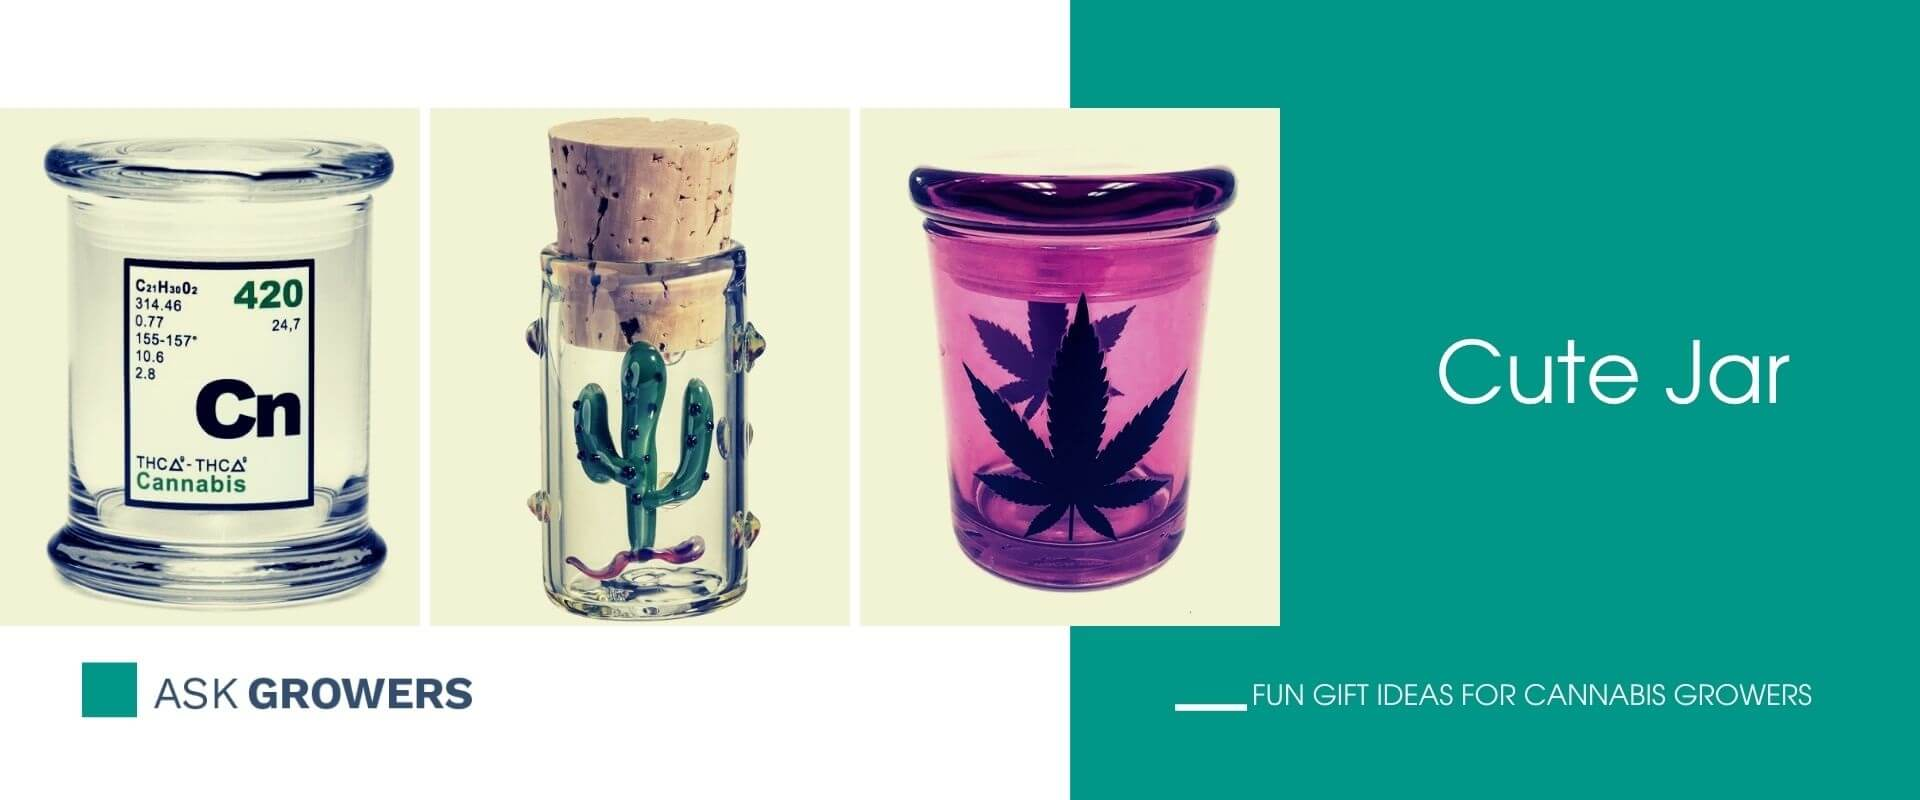 25 Fun Gift Ideas For Cannabis Growers Updated December 2020 Askgrowers